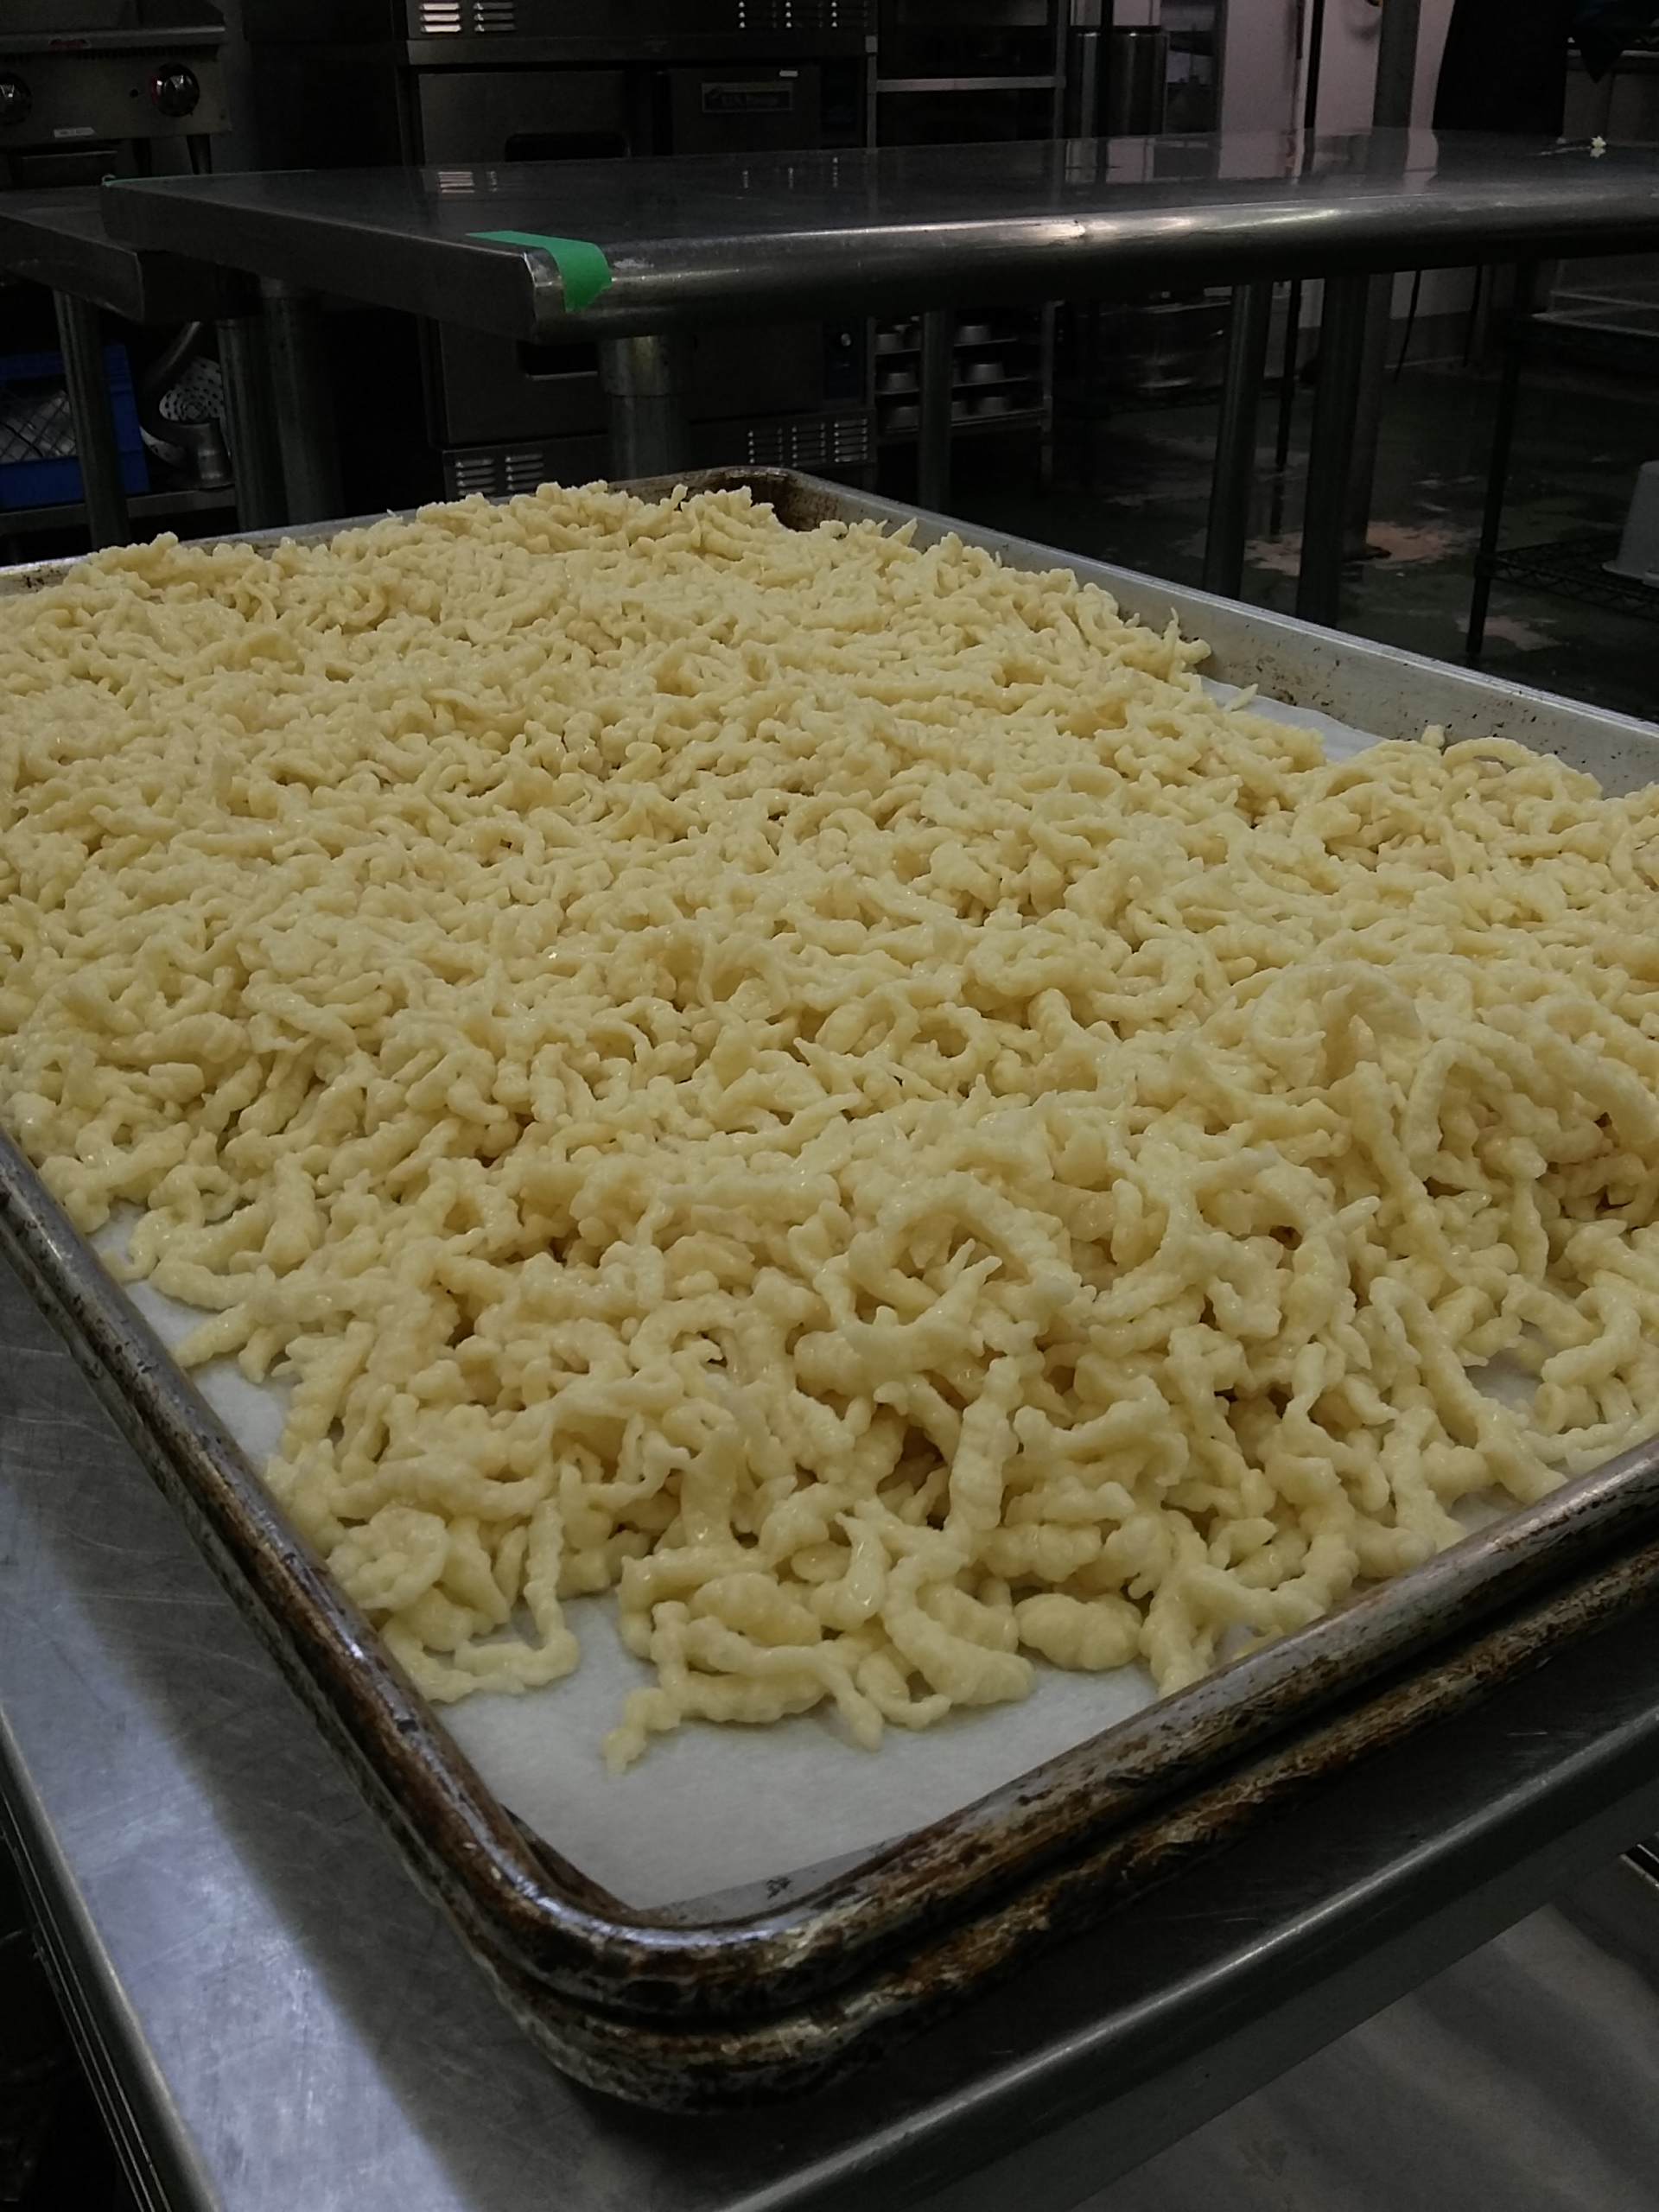 All the spätzle.